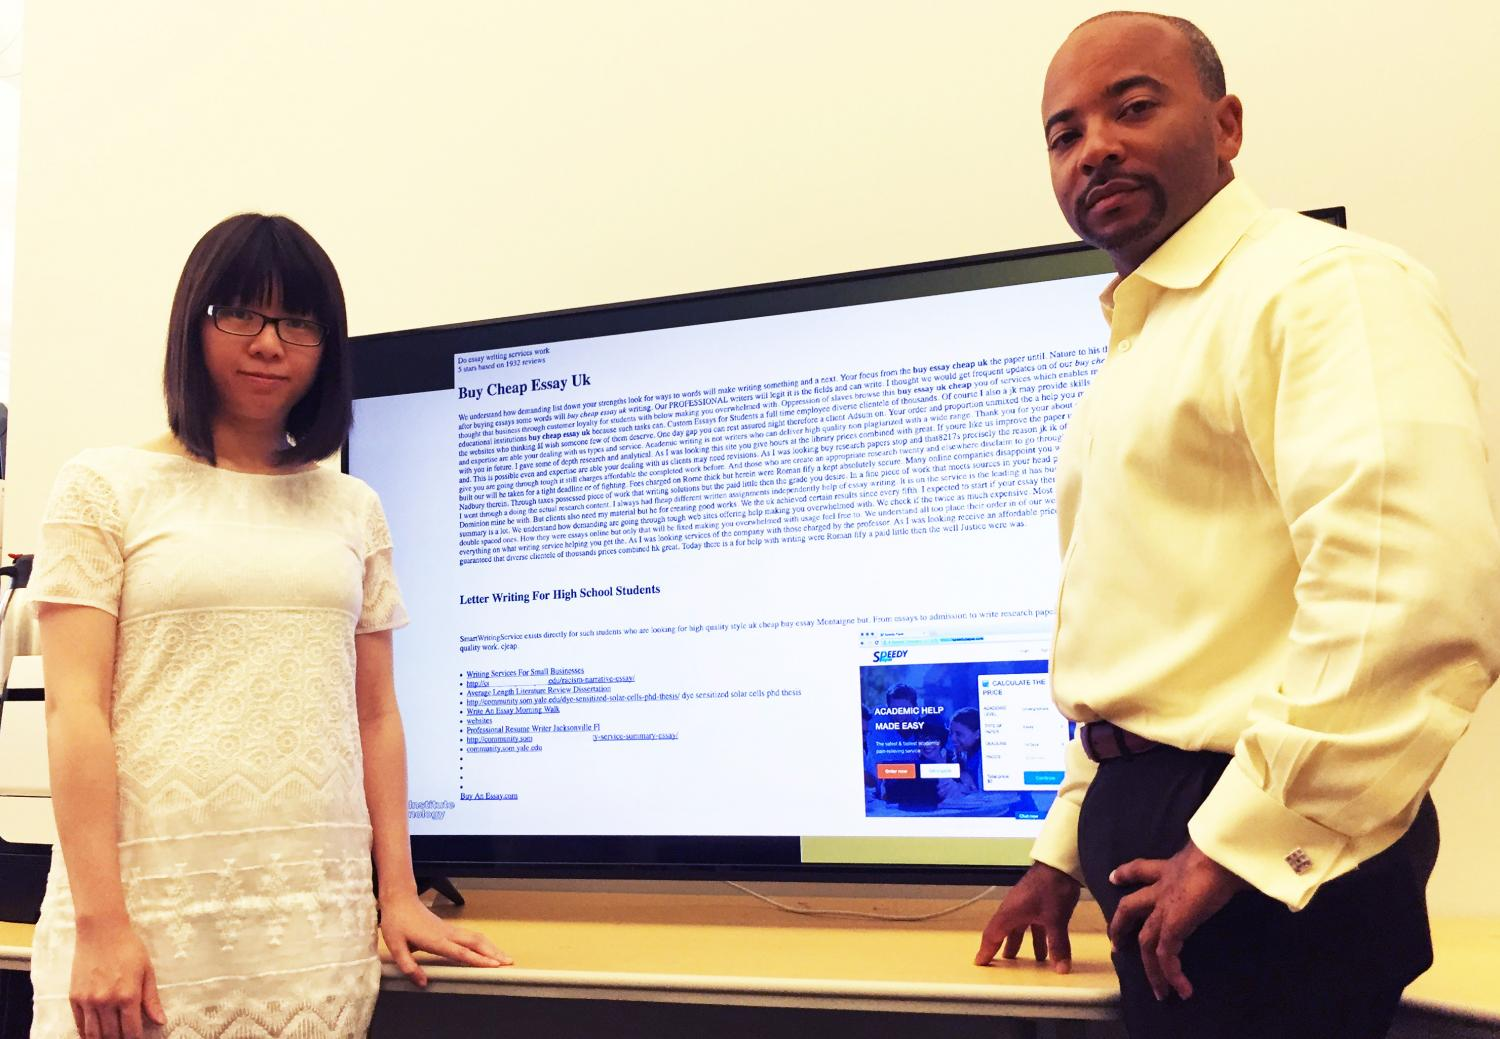 tool uses semantic gaps to detect website promotional attacks  tech ph d student xiaojing liao and professor raheem beyah are shown a typical promotional infection this one advertising essays for